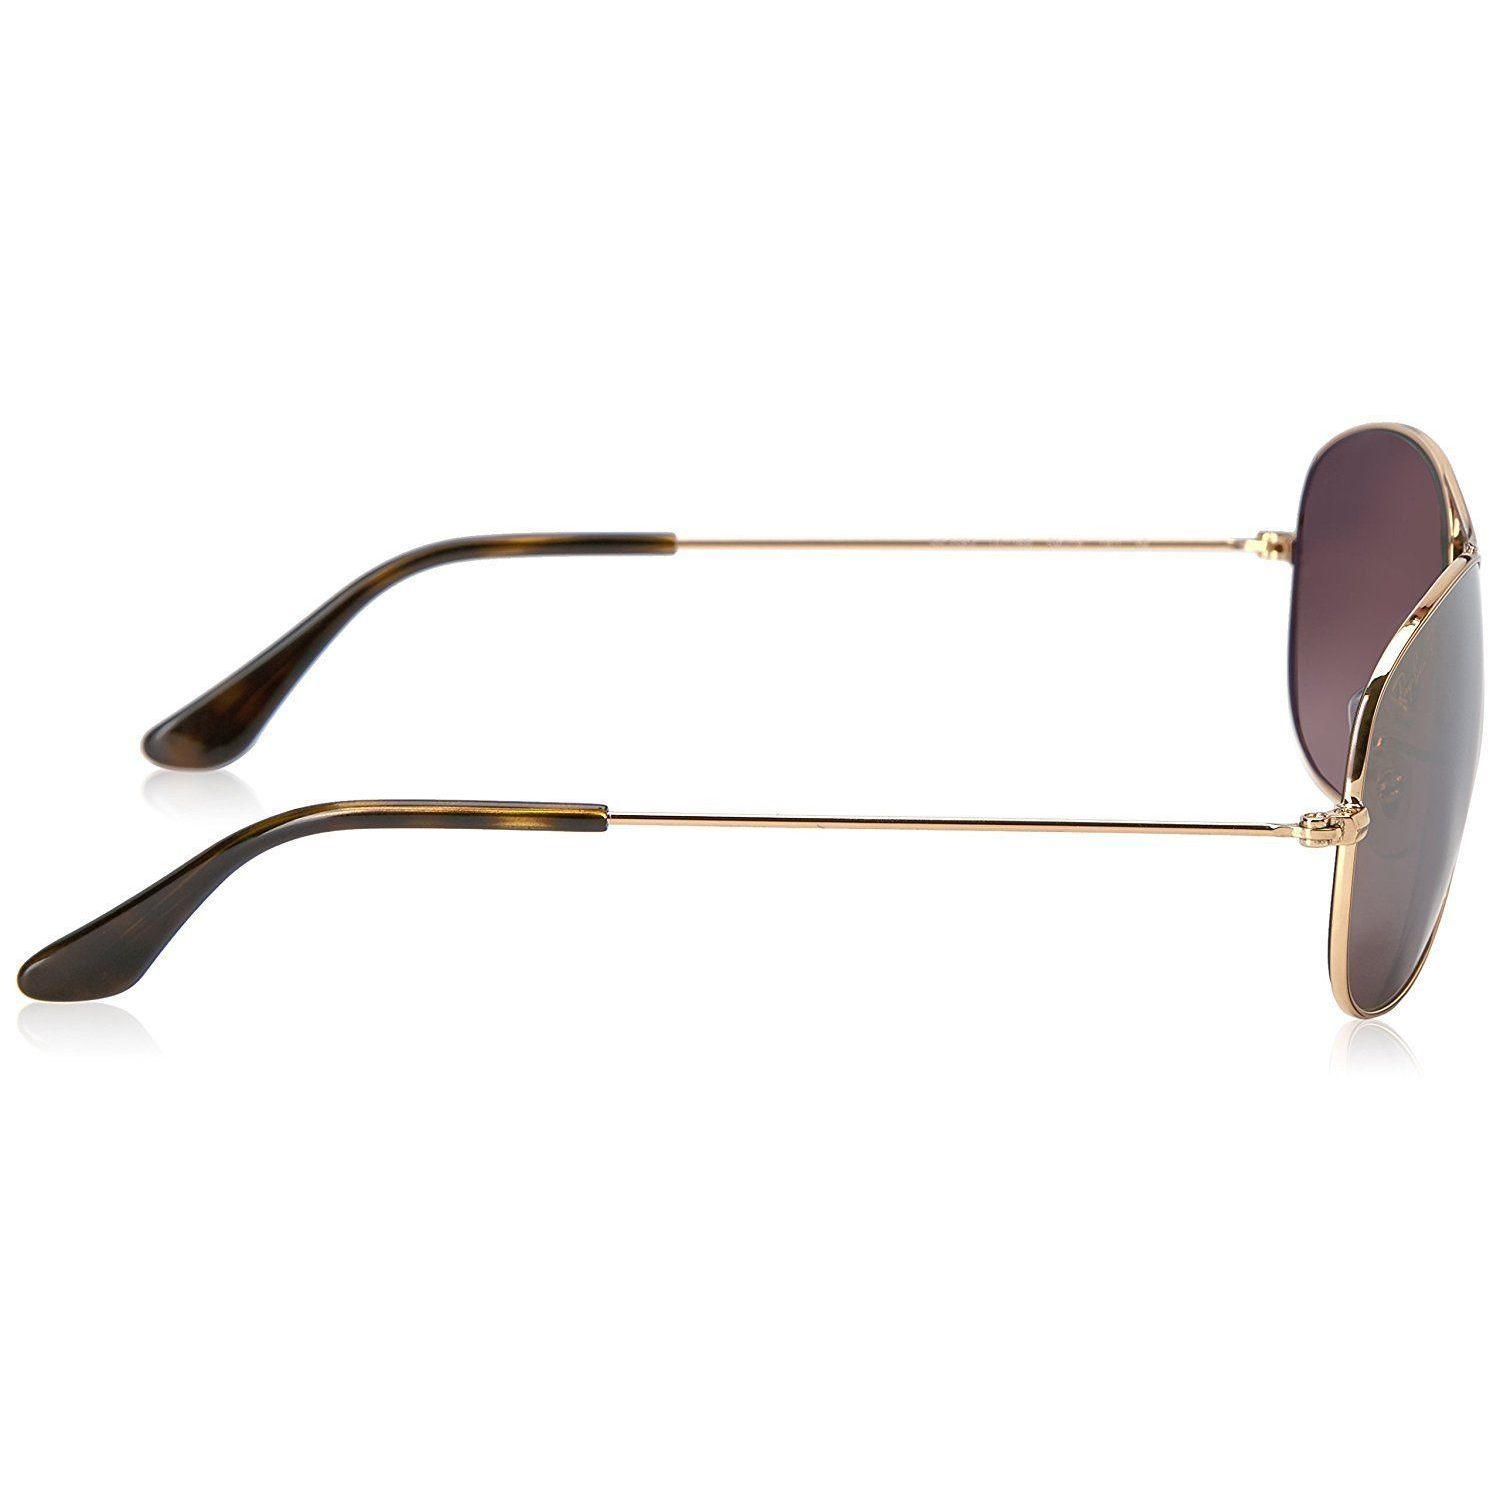 a225d7155c Shop Ray-Ban Chromance RB3562 001 6B Men s Gold Frame Purple Mirror  Polarized 59mm Lens Sunglasses - Free Shipping Today - Overstock - 15287631